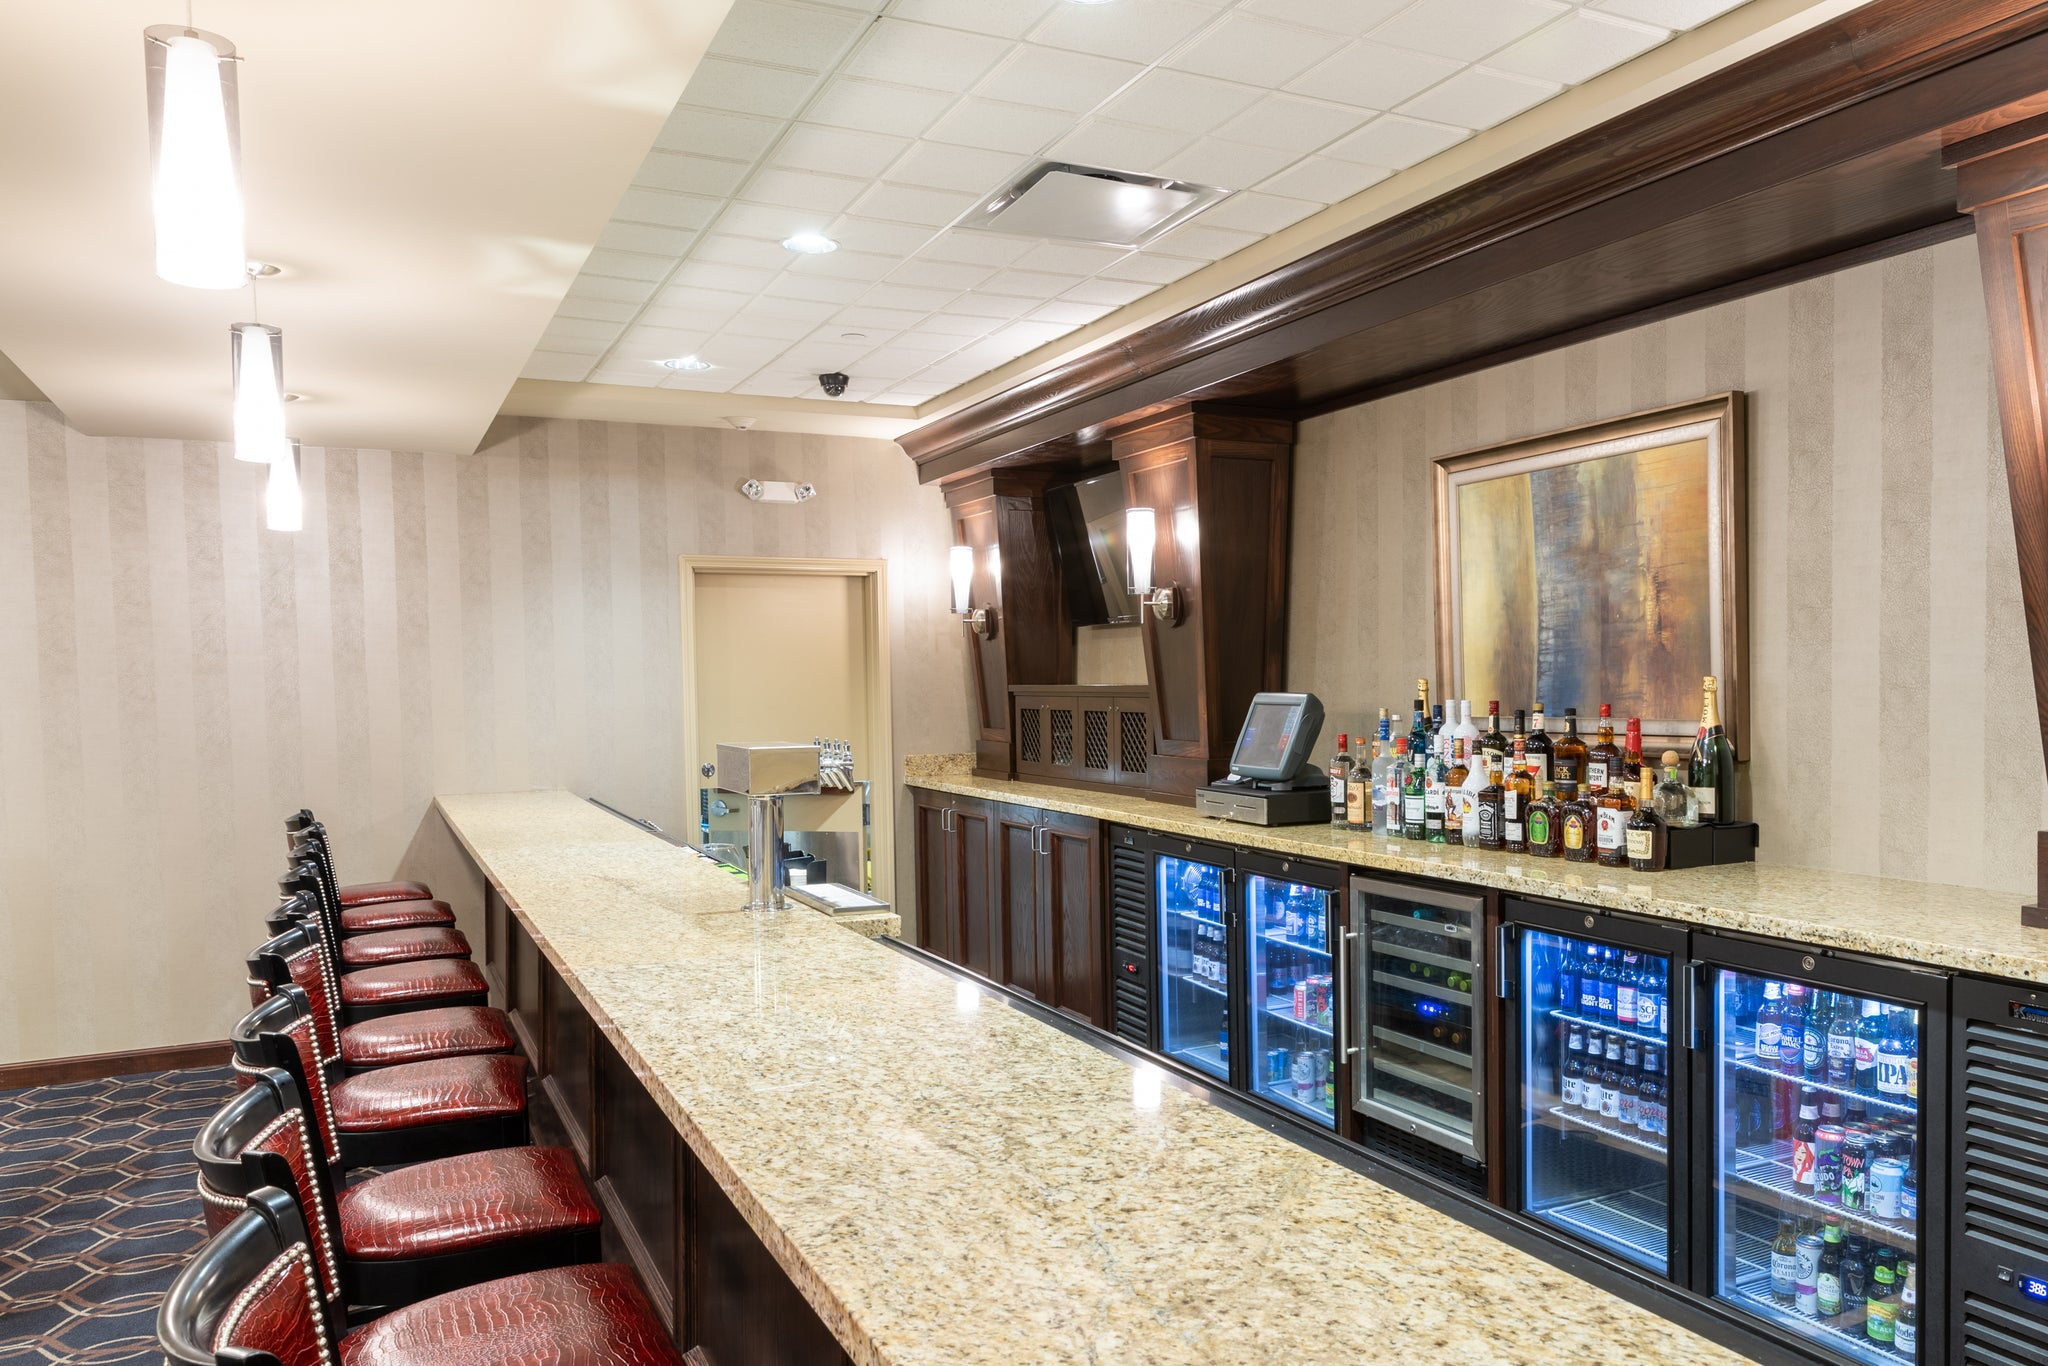 hilton garden inn event center bar